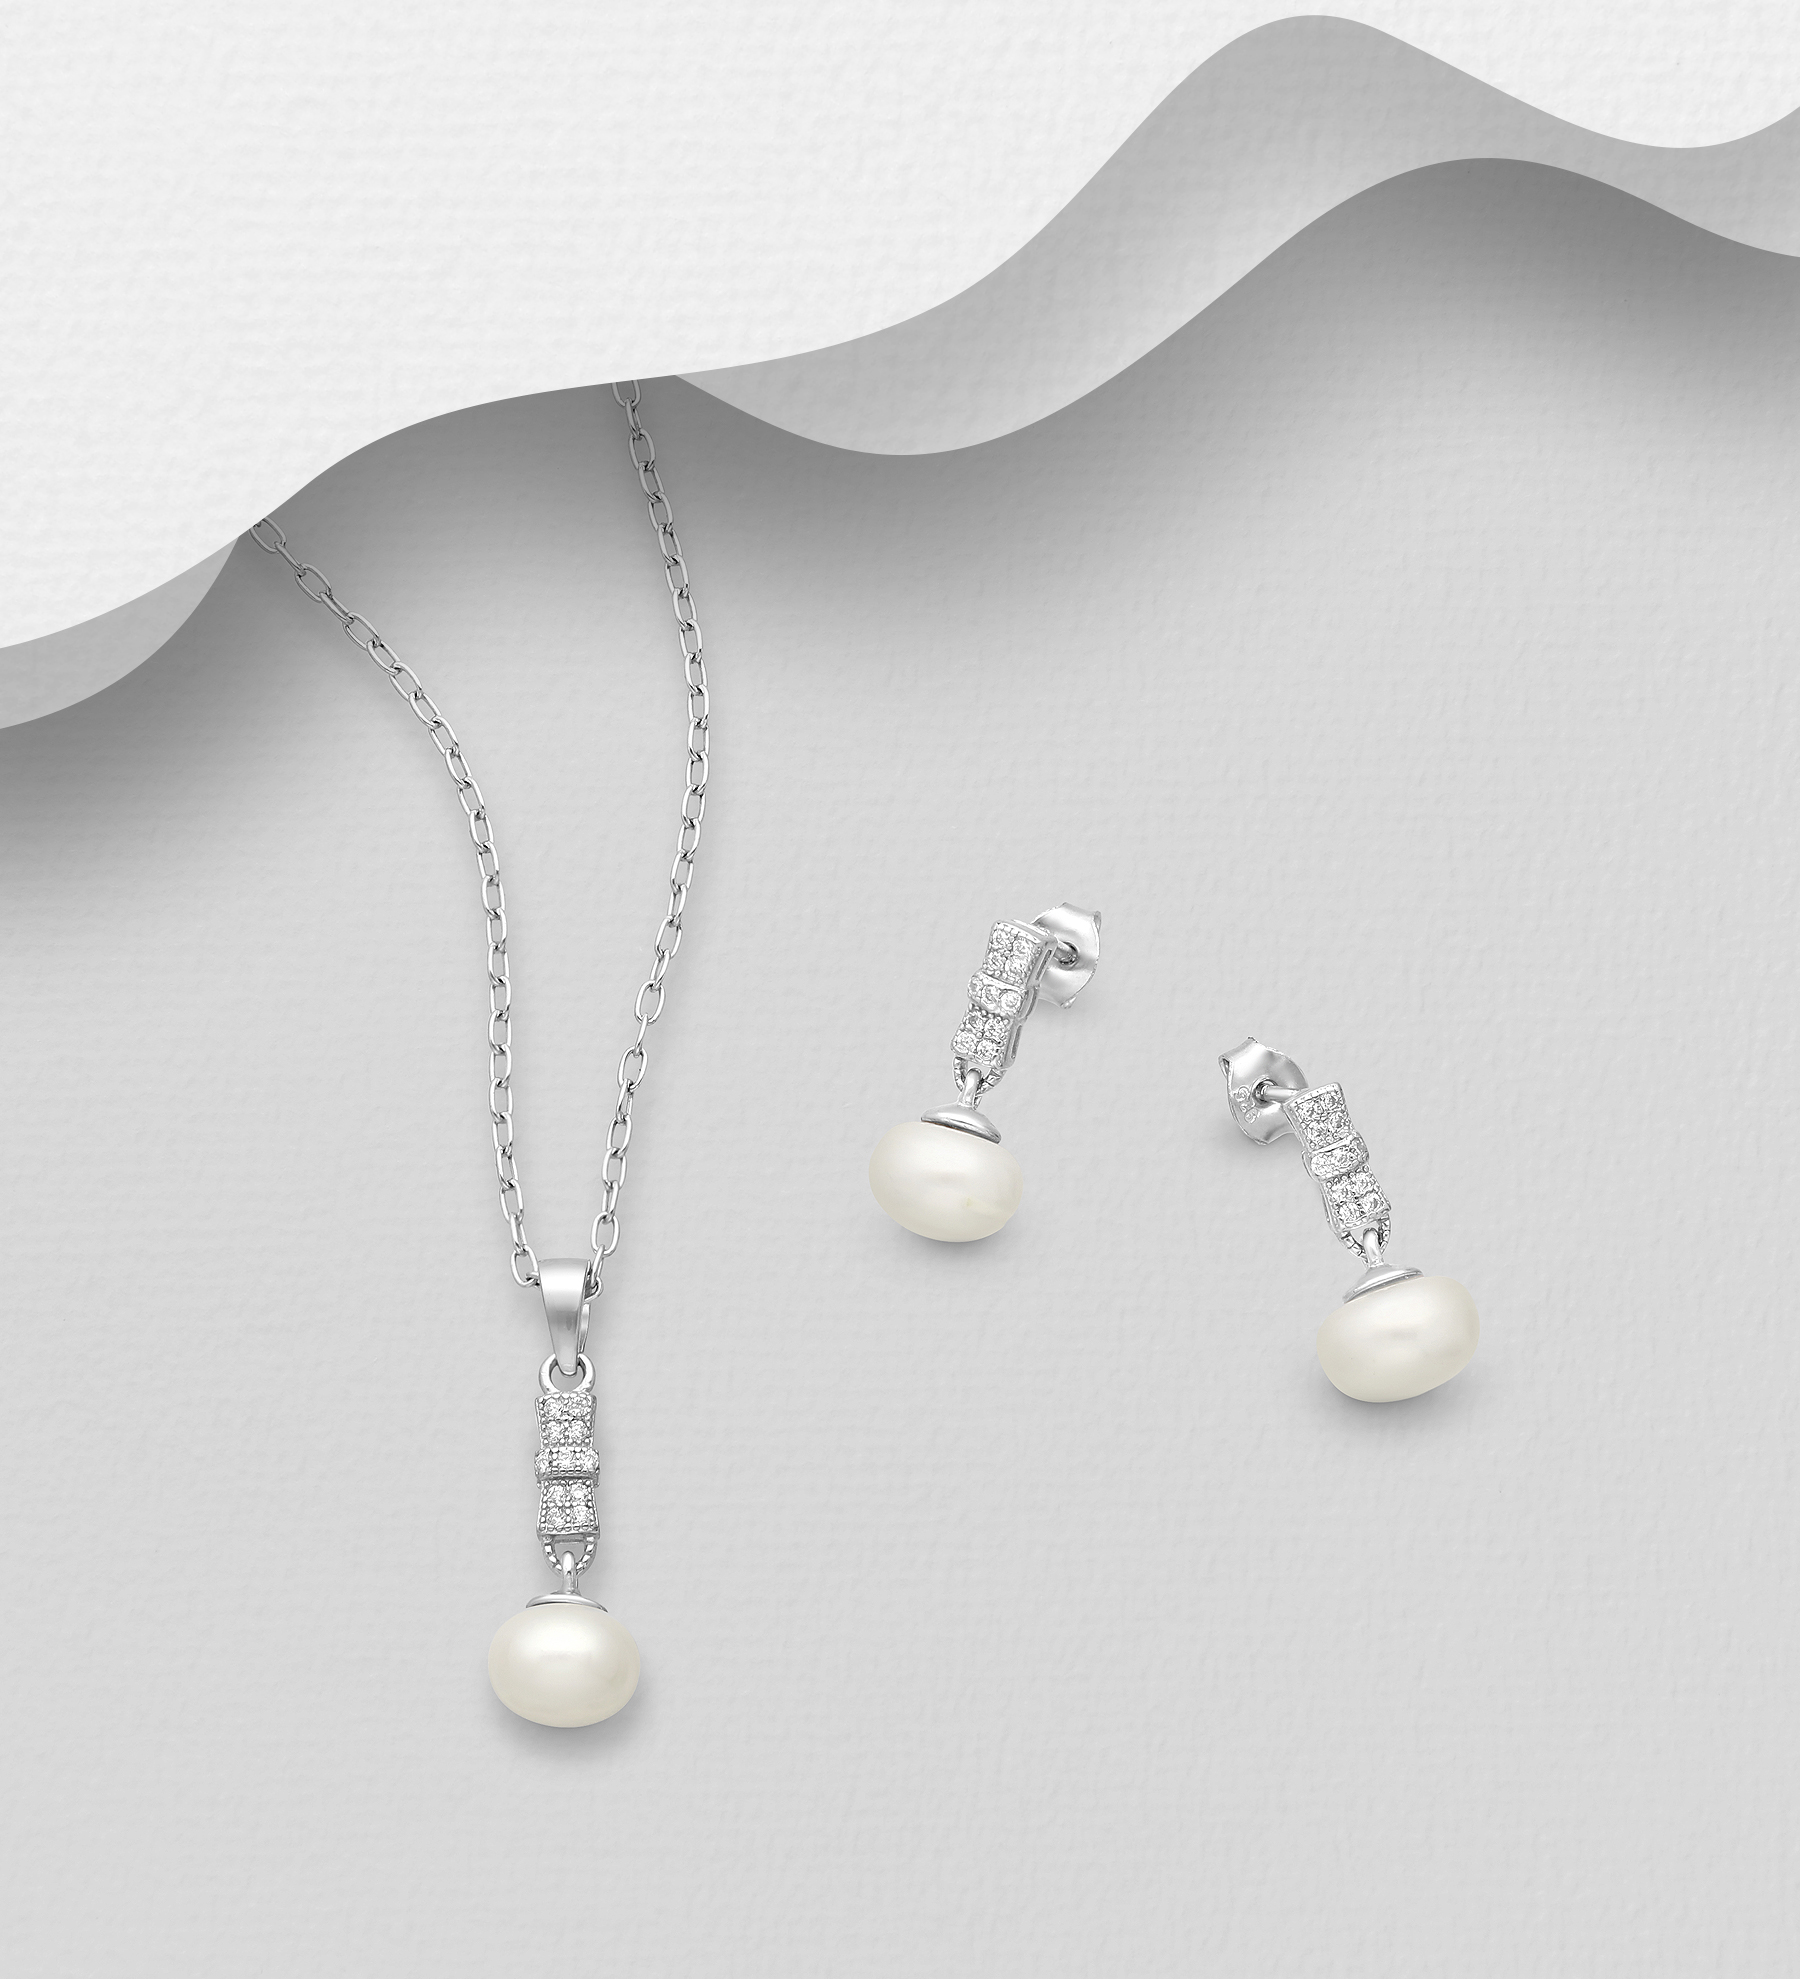 382-5415 - 925 Sterling Silver Set of Push-Back Earrings and Pendant Decorated with CZ Simulated Diamonds and Freshwater Pearls